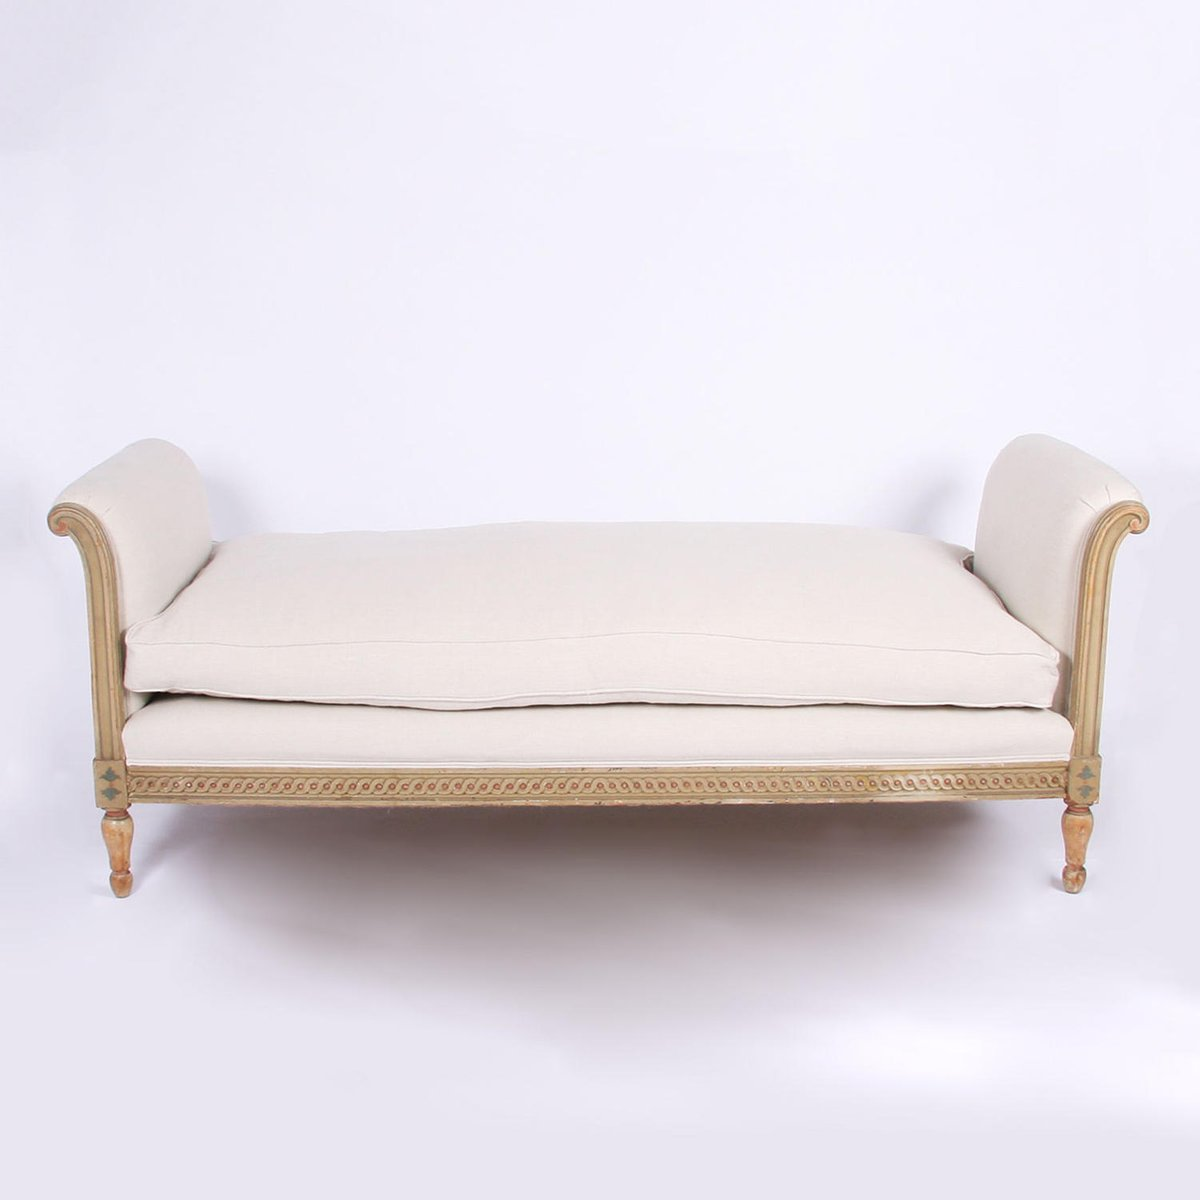 Vintage French Daybed